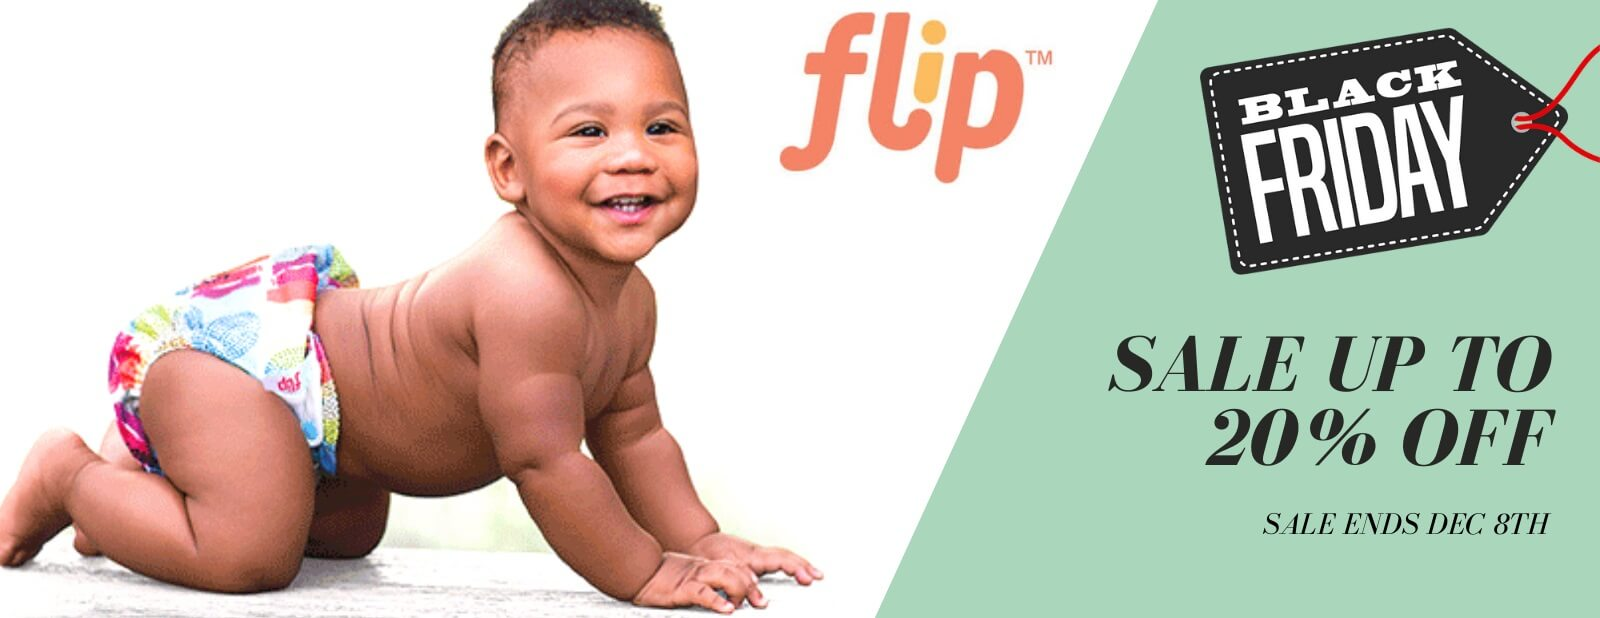 flip cloth diapers black friday sale